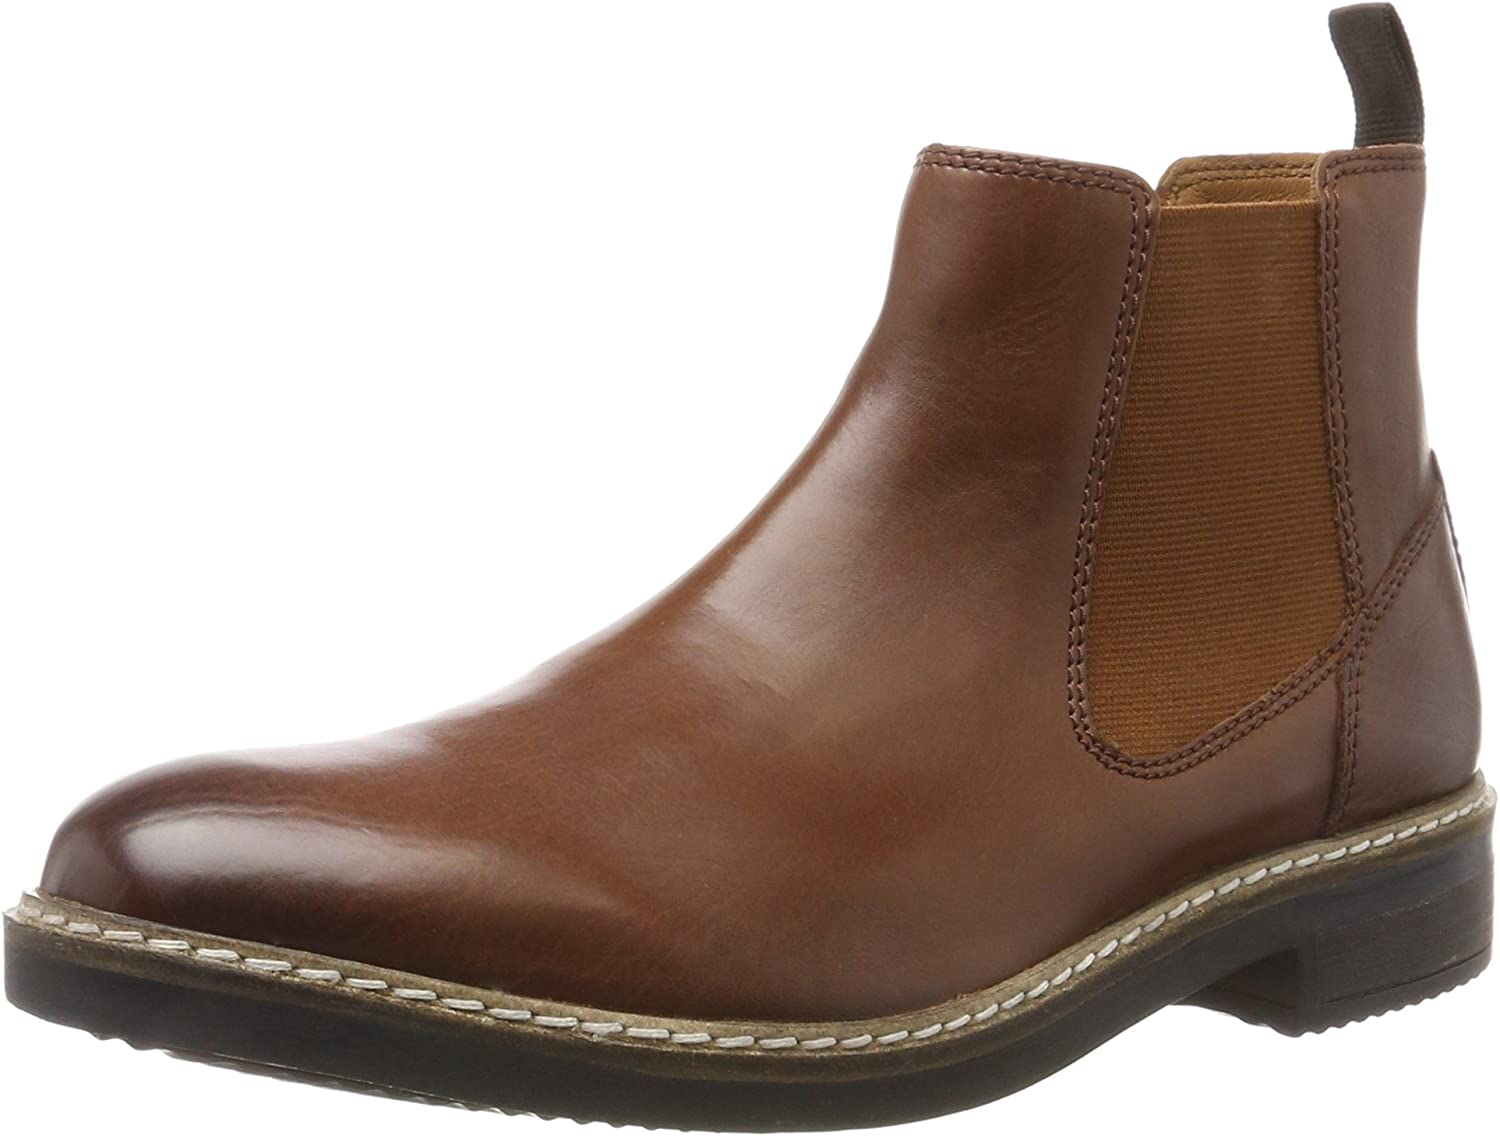 Clarks Blackford Top - British Tan Leather (Brown) Mens Boots